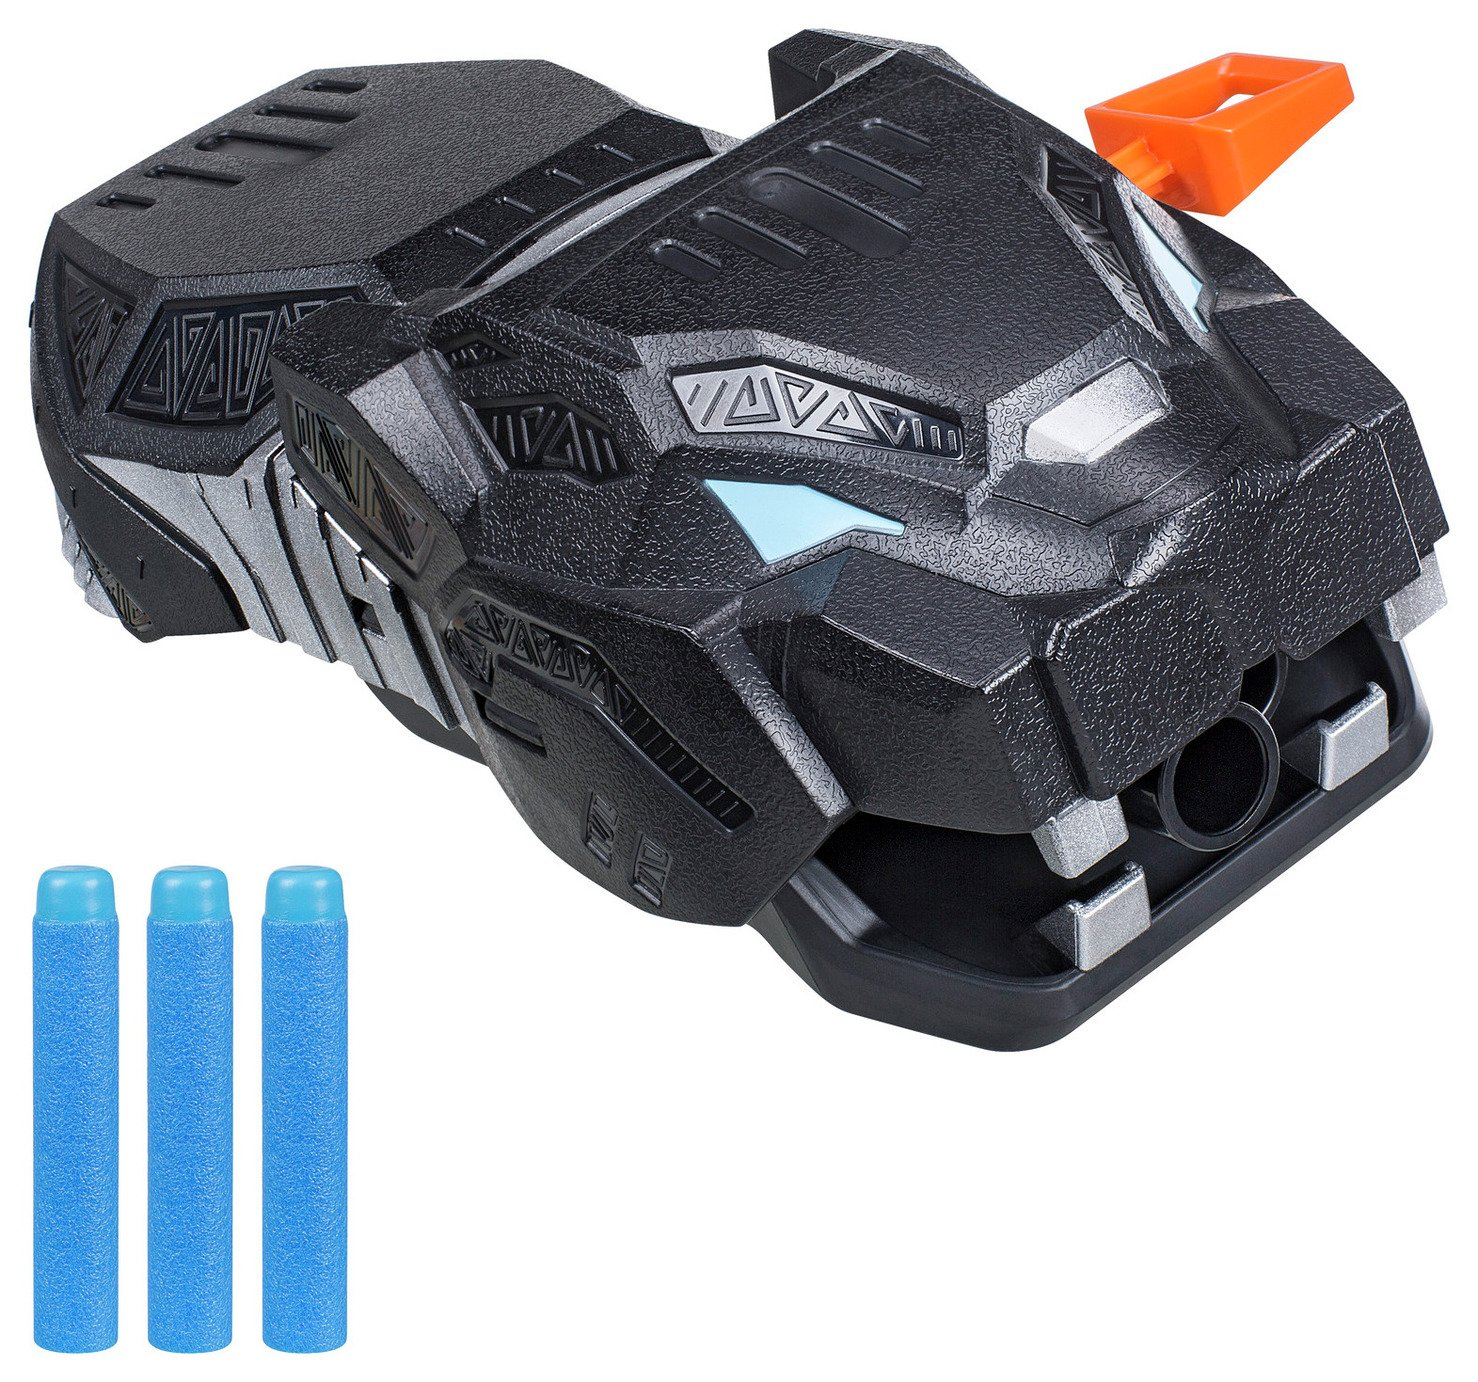 Marvel Black Panther Vibranium Strike Nerf Gauntlet